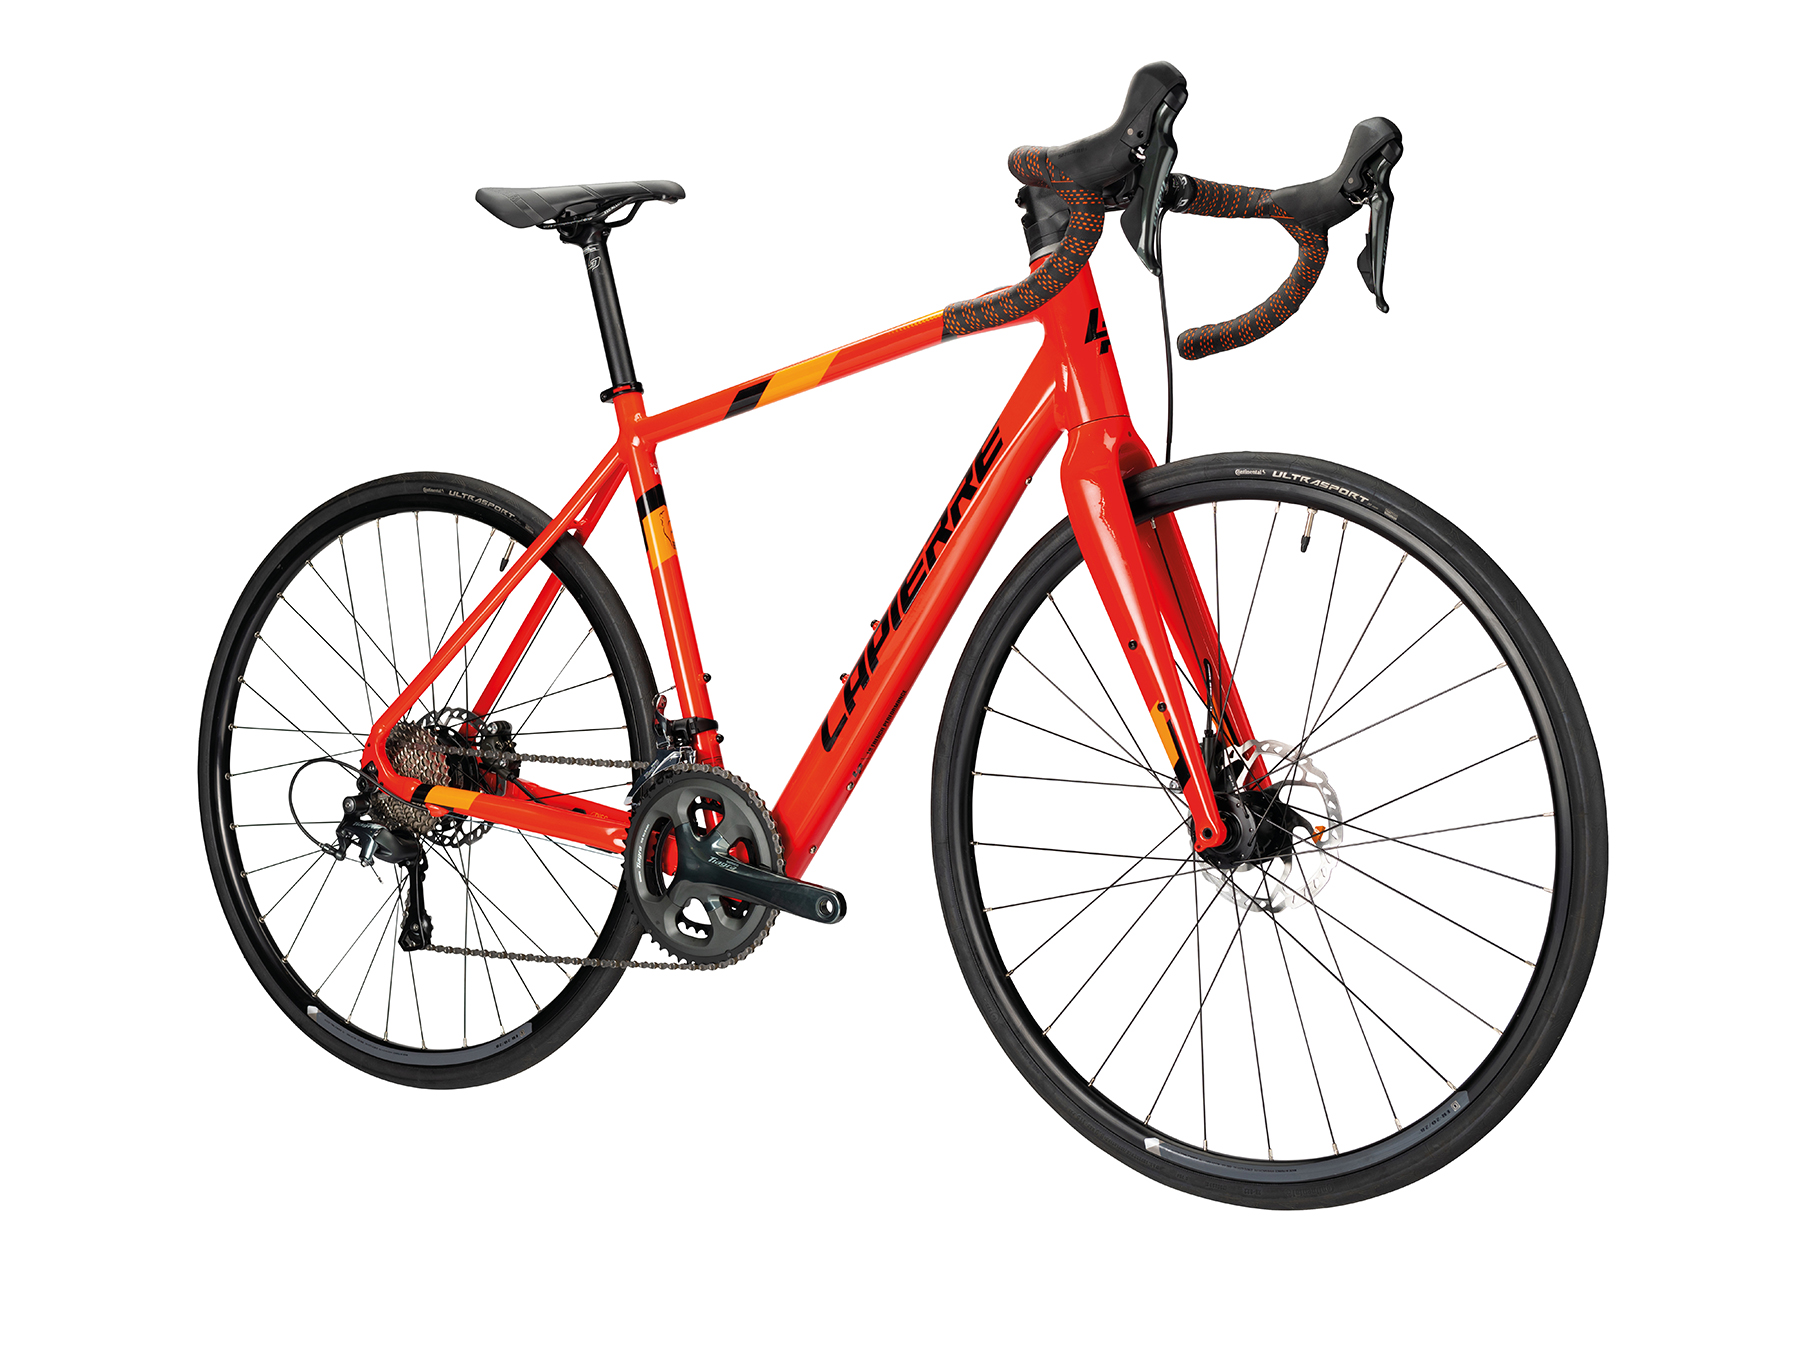 Lapierrre eSensium AL 300 2020 Road Bike with Electric Assist